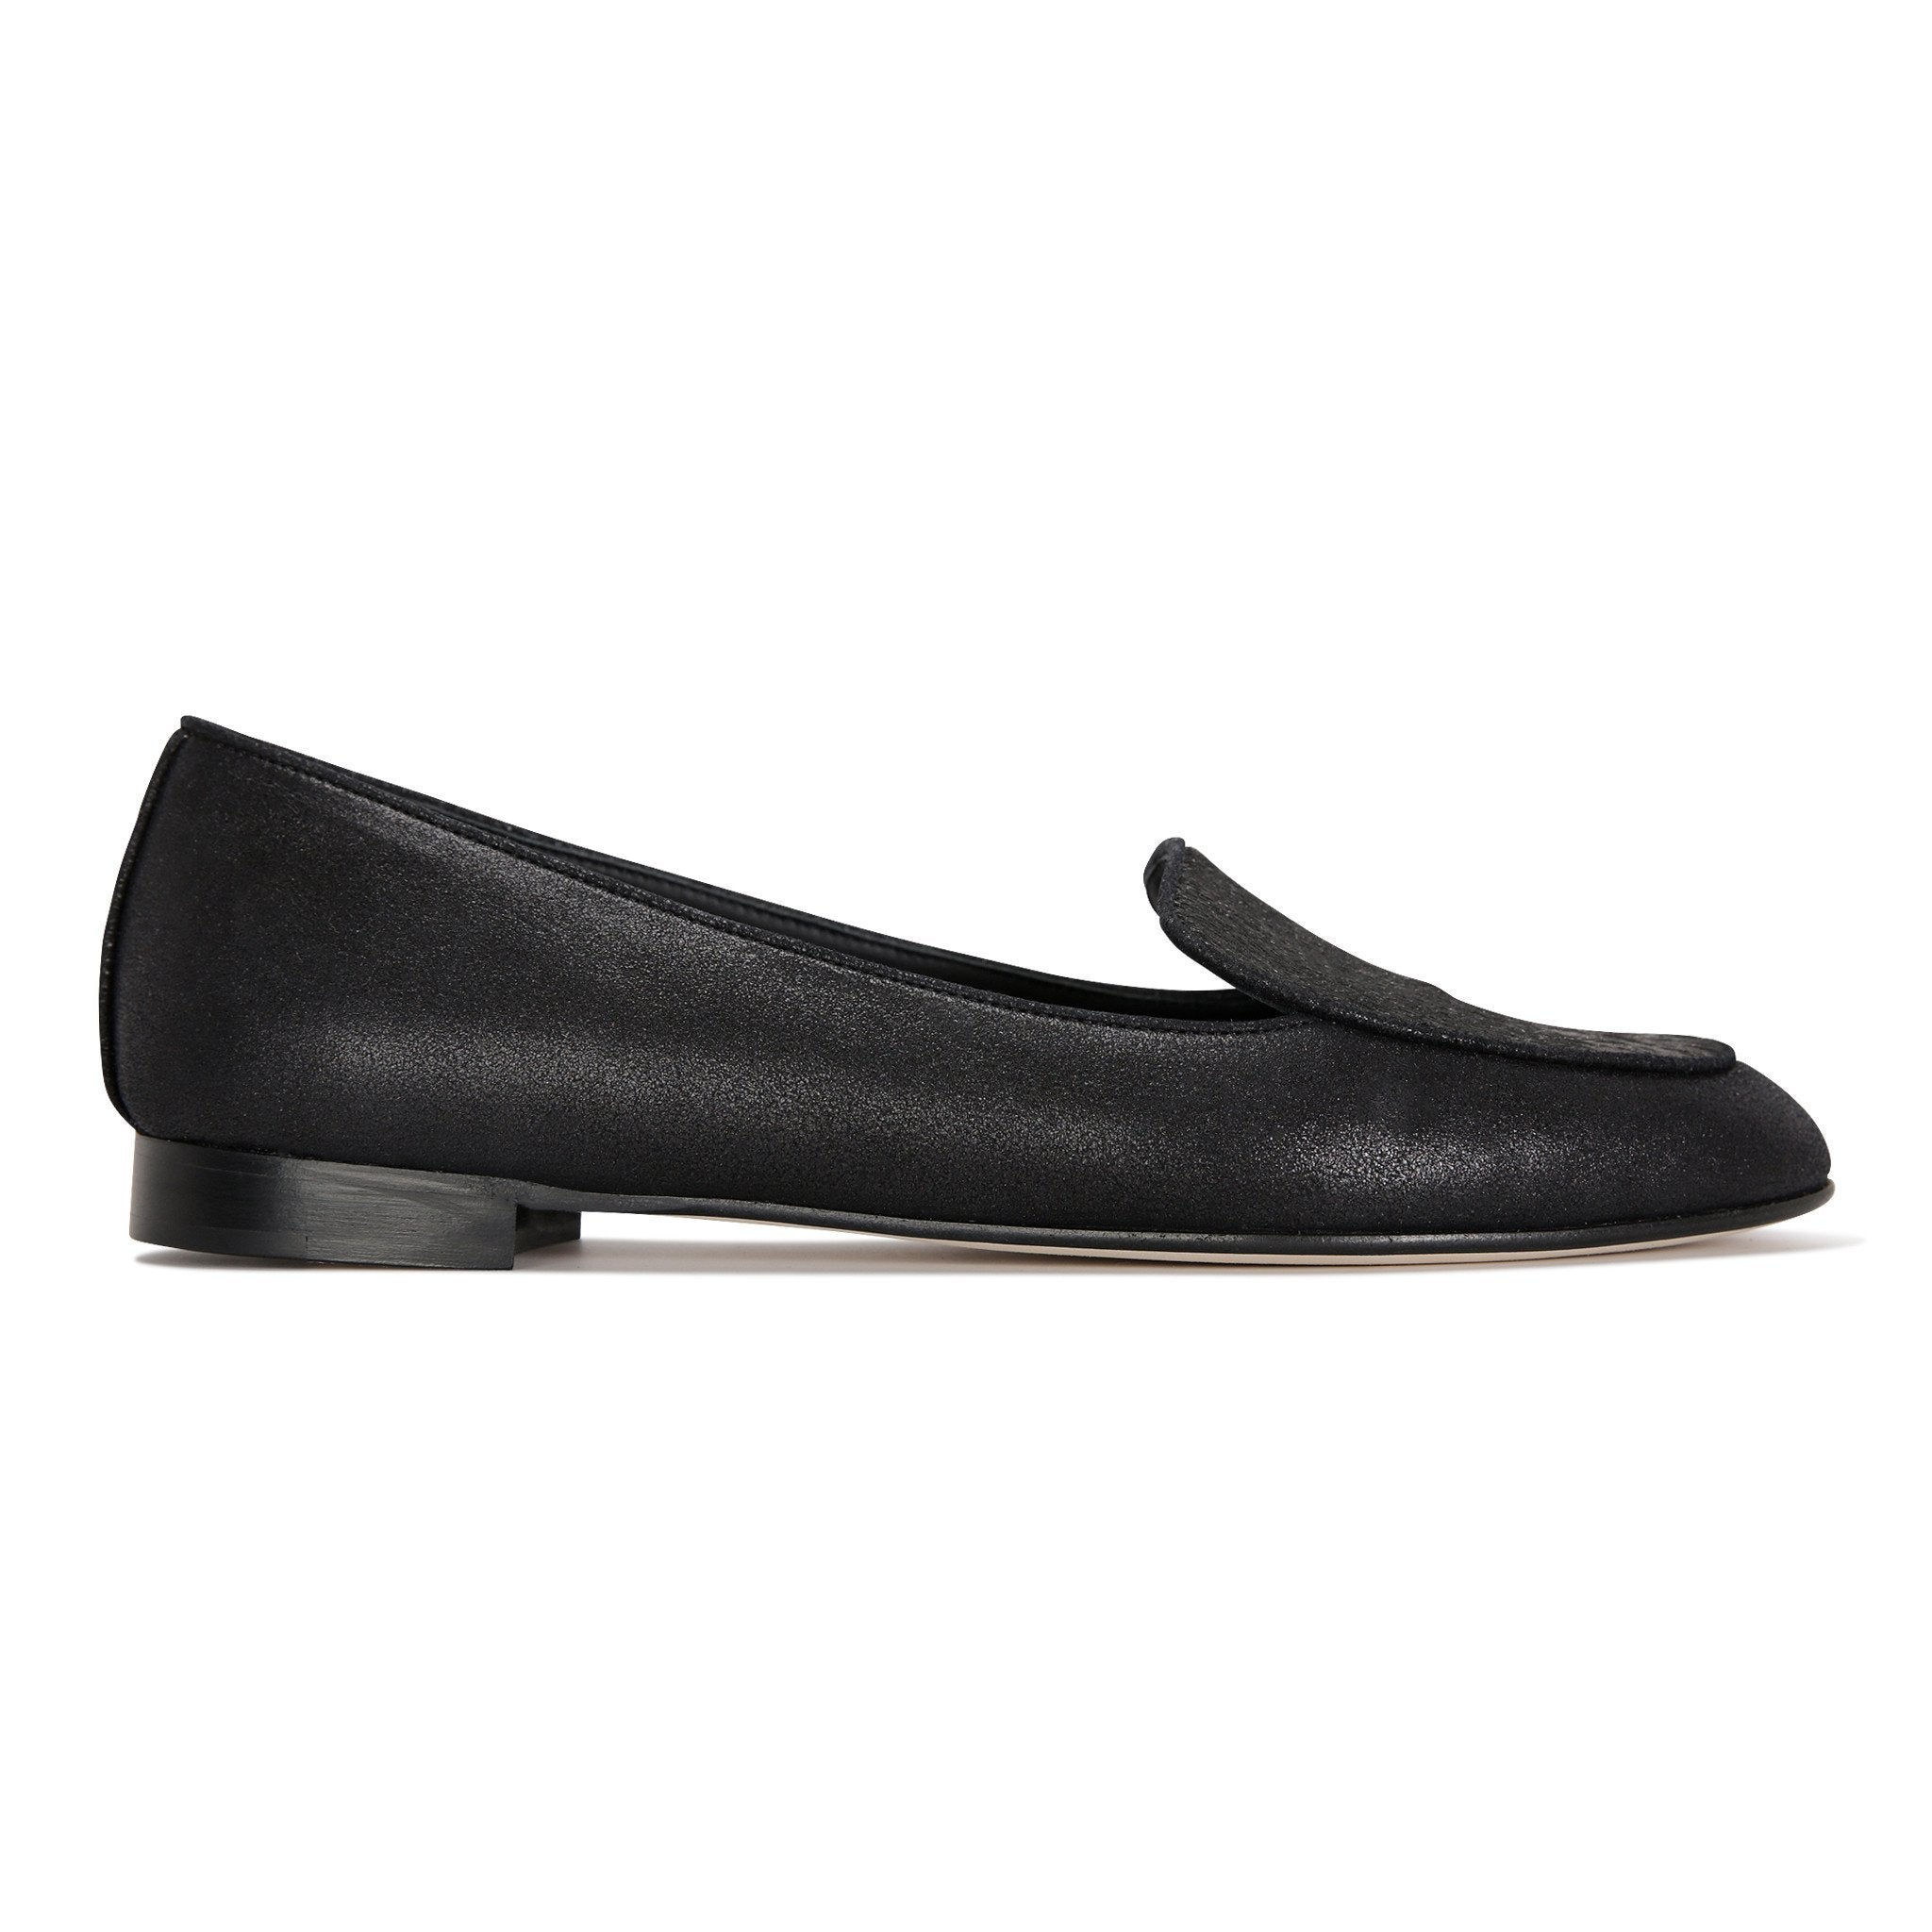 REGGIO - Burma Nero + Calf Hair Vintage, VIAJIYU - Women's Hand Made Sustainable Luxury Shoes. Made in Italy. Made to Order.